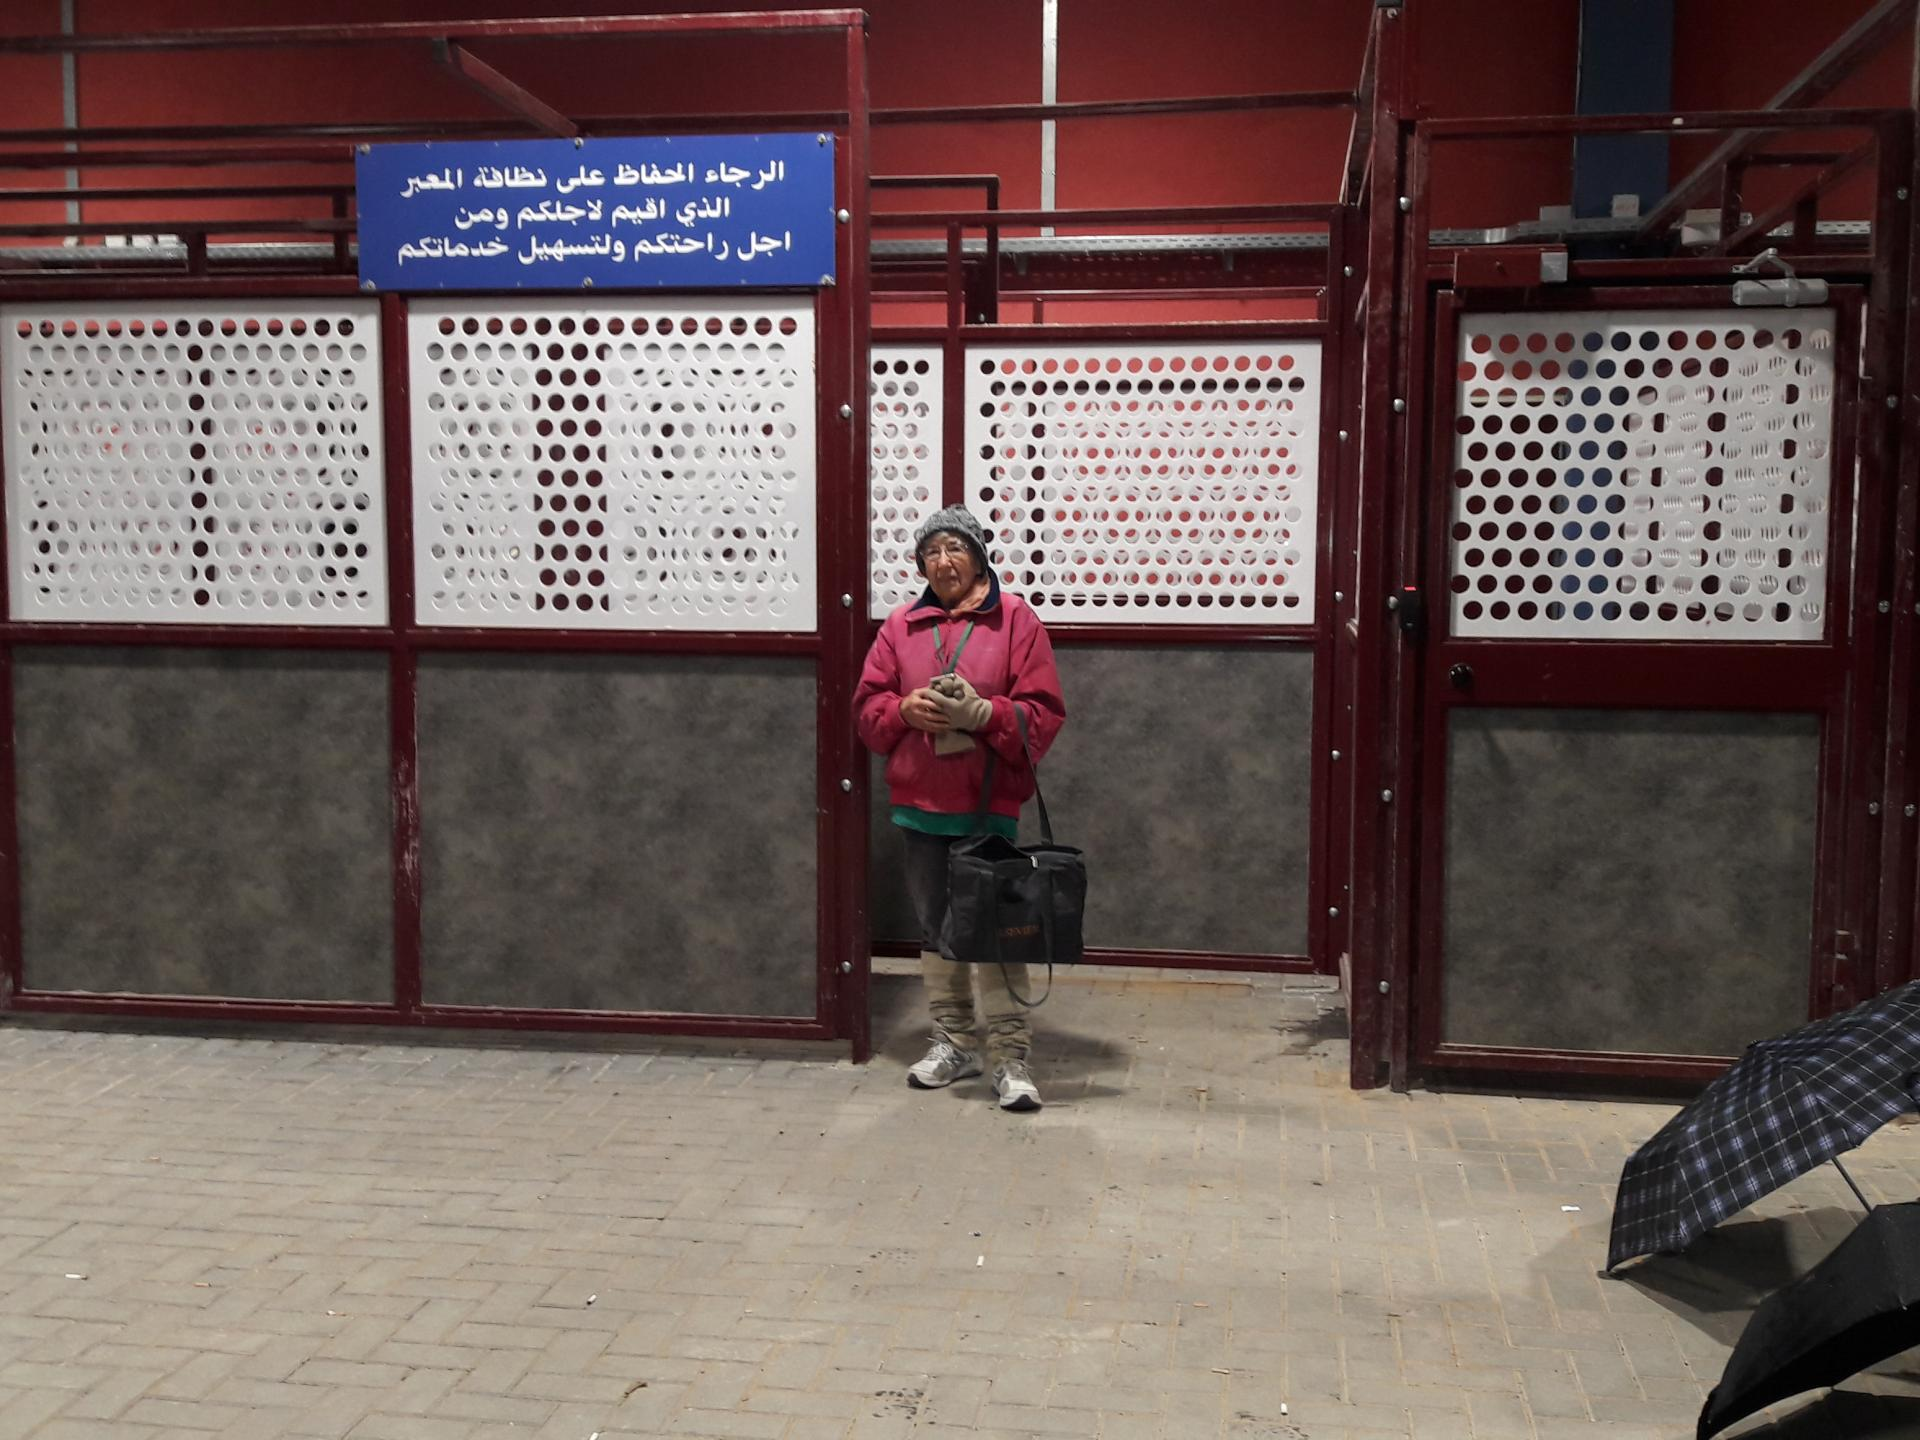 Chana Stein at the entrance to one of the entrances to the new checkpoint